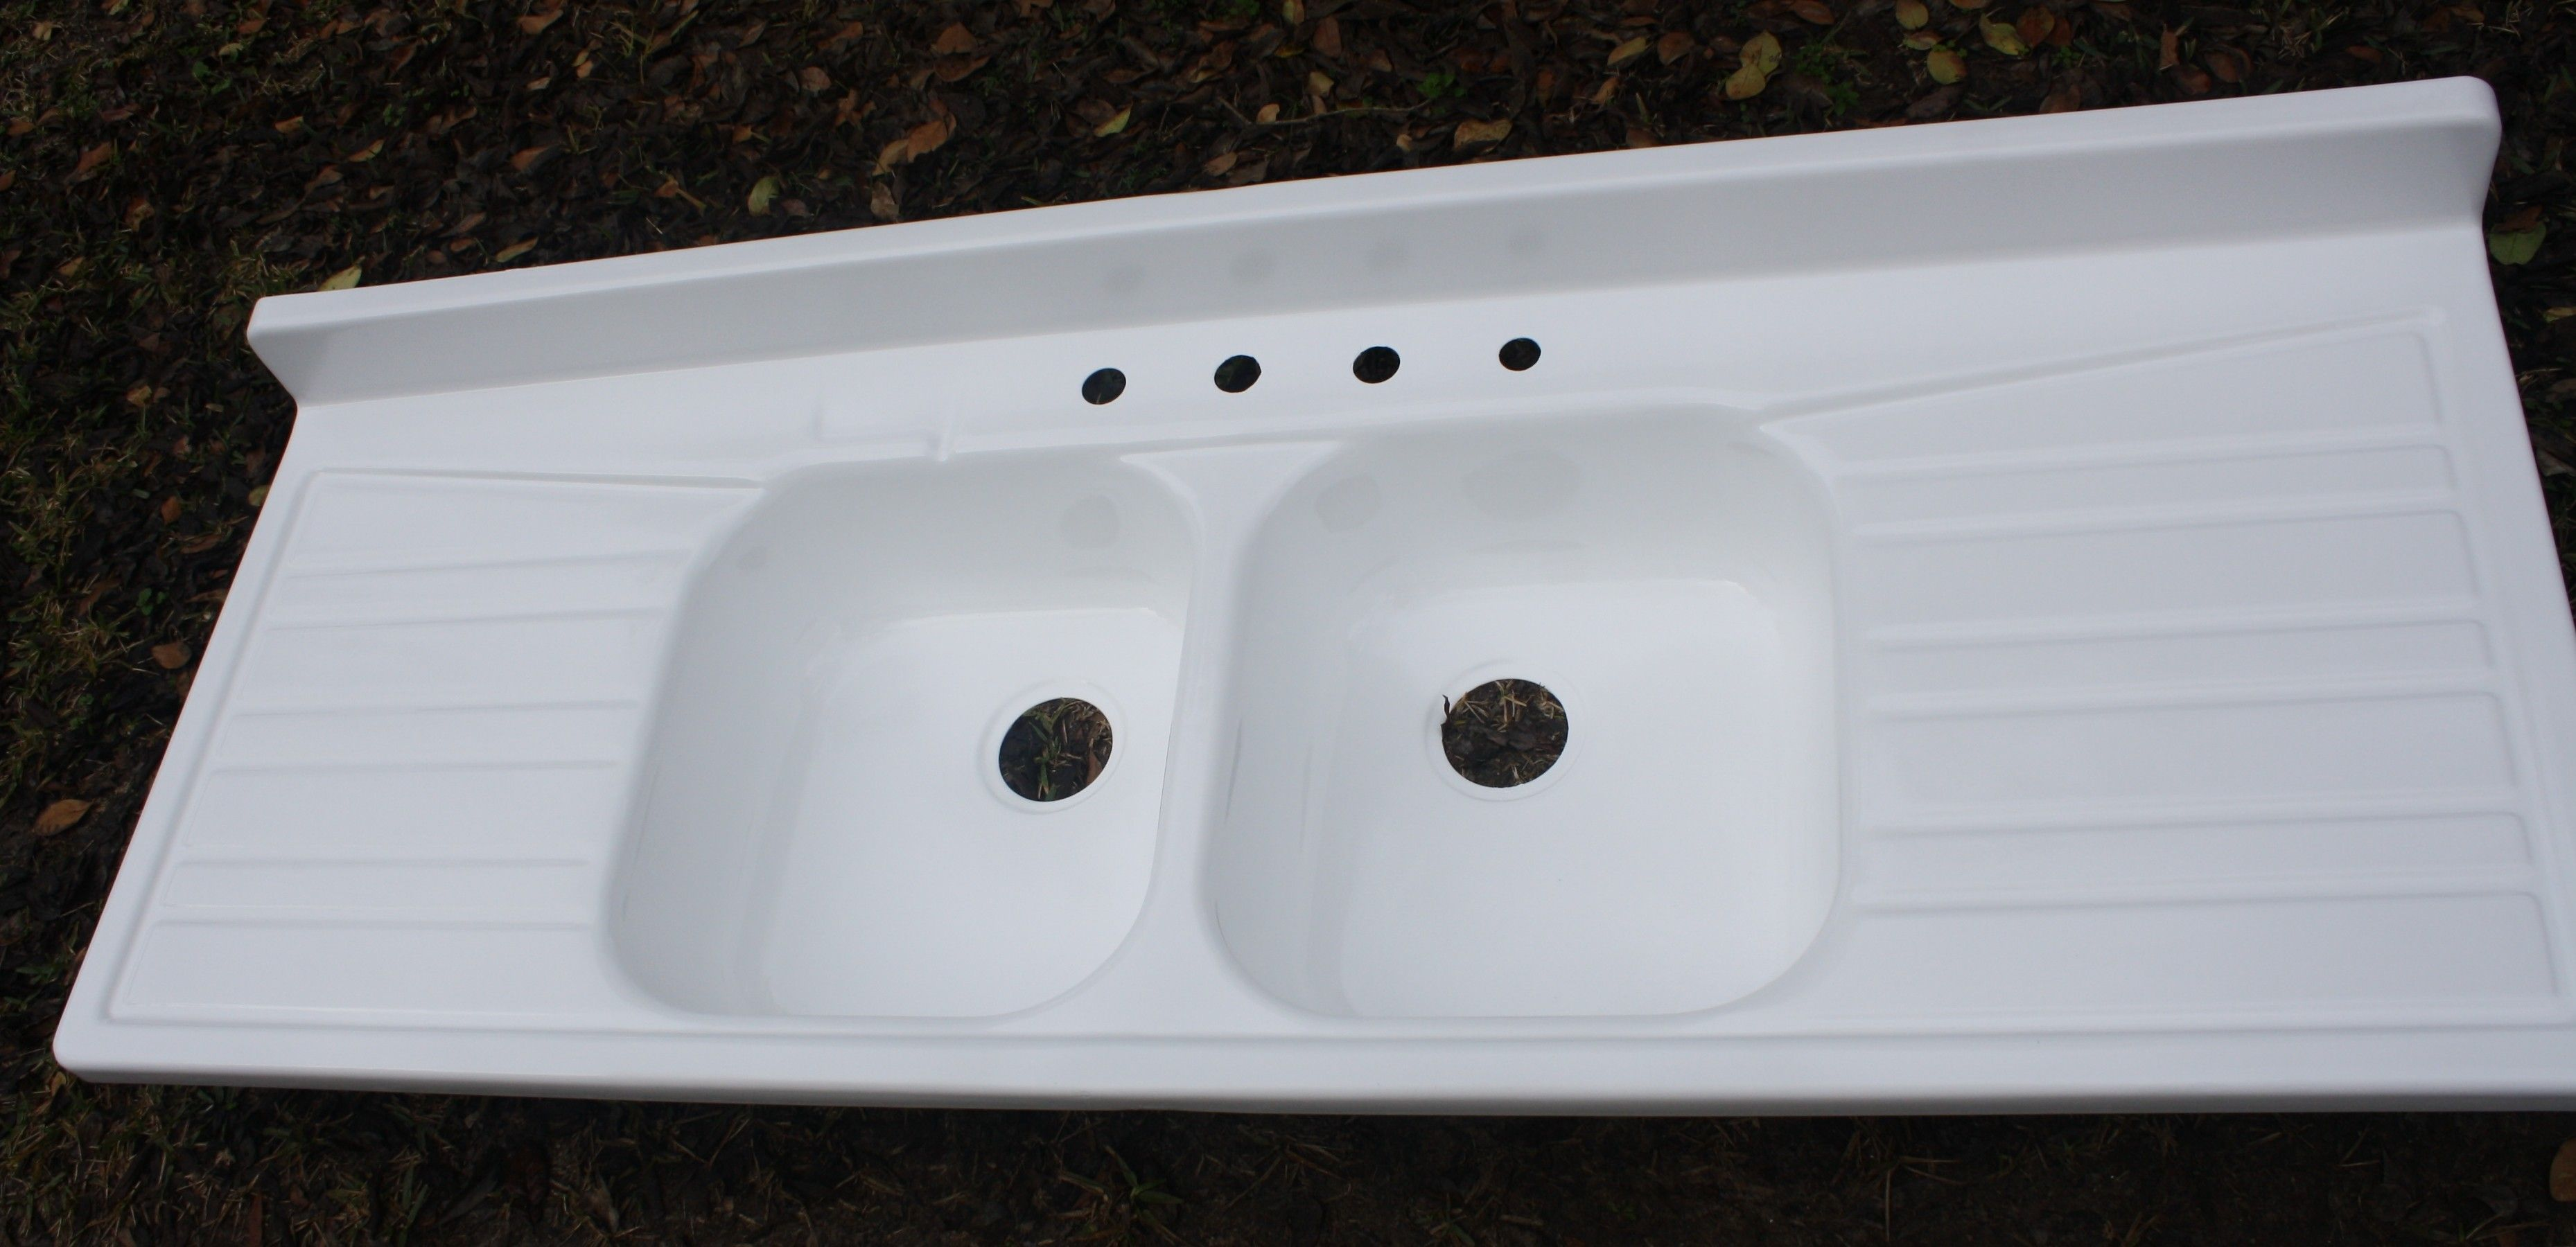 Large Ceramic Or Enameled Sinks With Drain Board 1950 S Enamel Farmhouse Sink Two